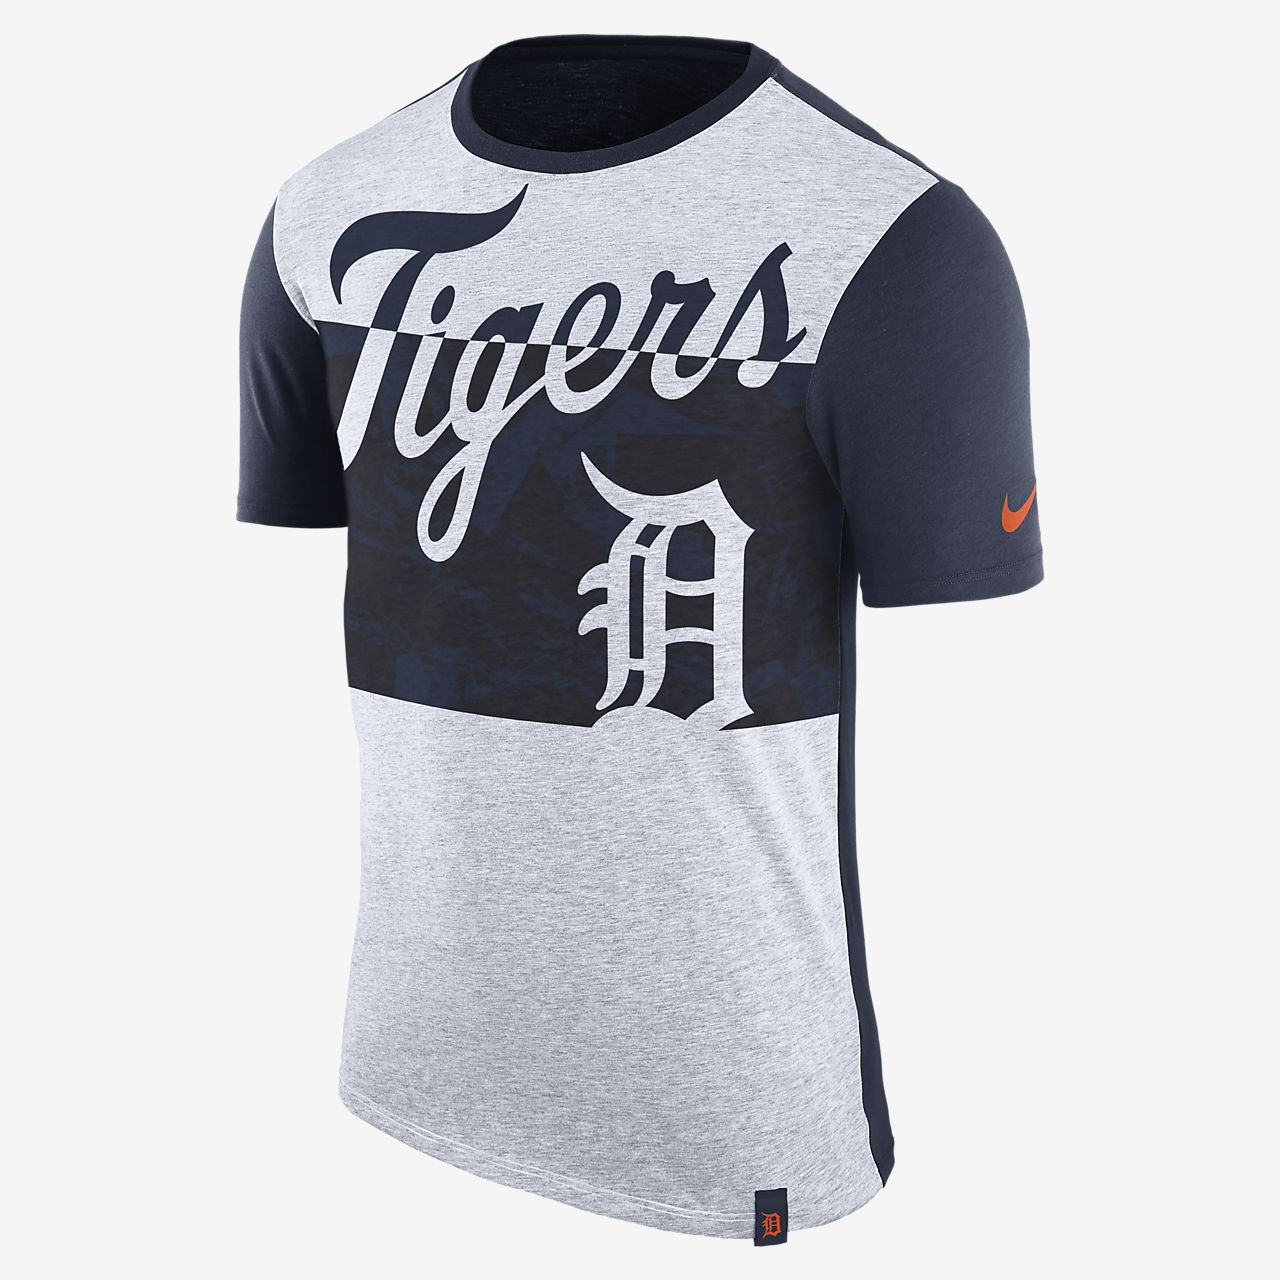 Nike Dri-Blend Sliced (MLB Tigers) Men s T-Shirt. Nike.com 7ce641bfe